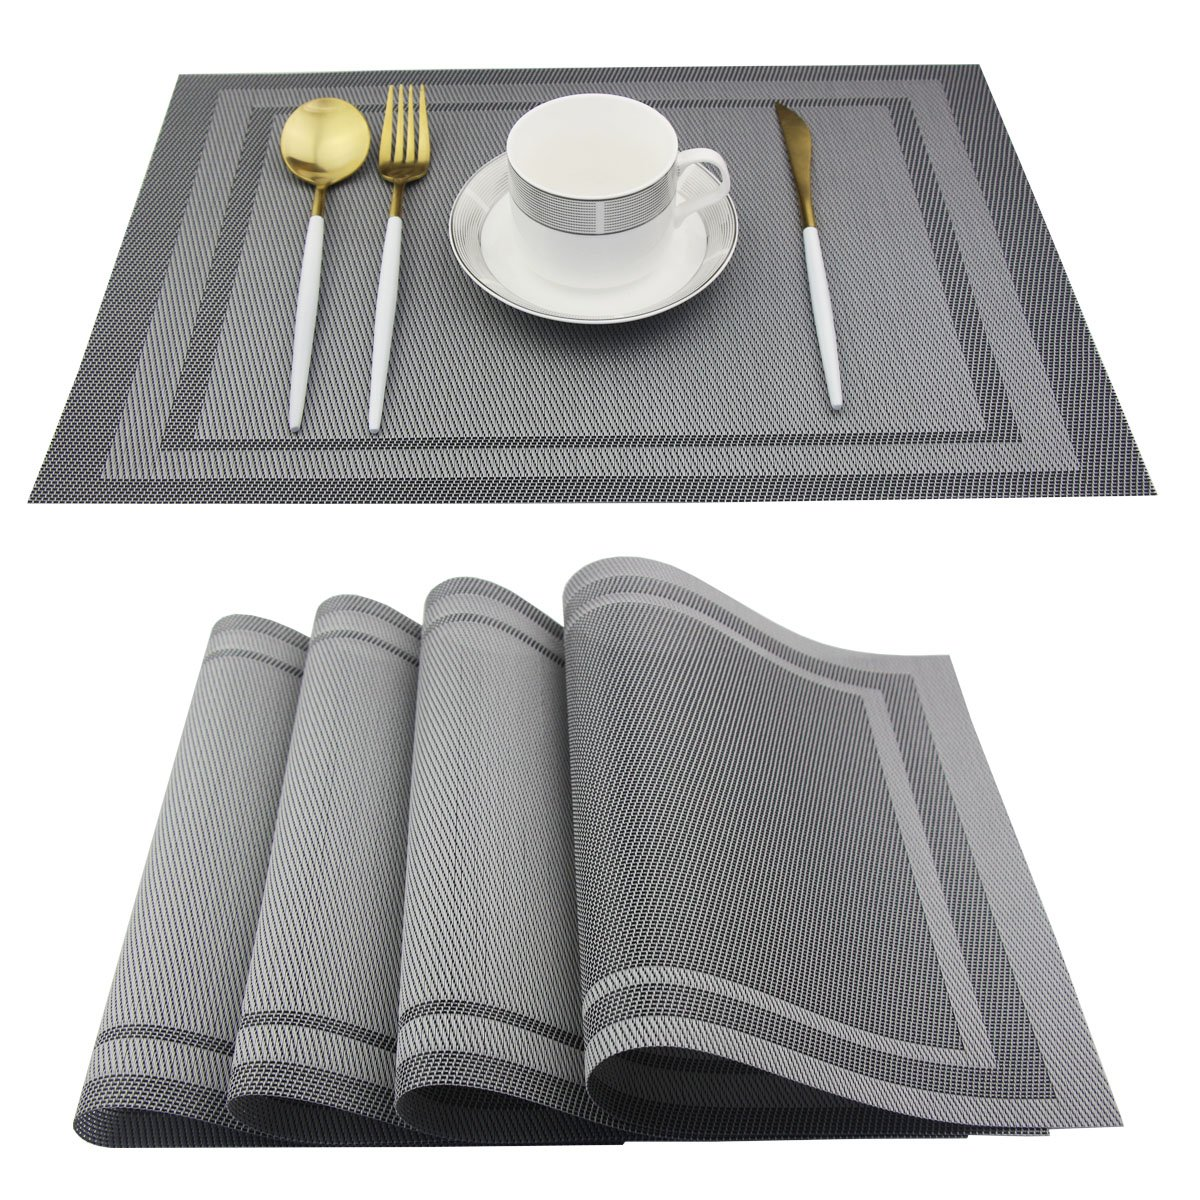 Bright Dream Placemats Easy to Clean Non-Slip Woven Plastic Placemats for Kitchen Placemat Washable Table Mats Set of 4 (Silver)